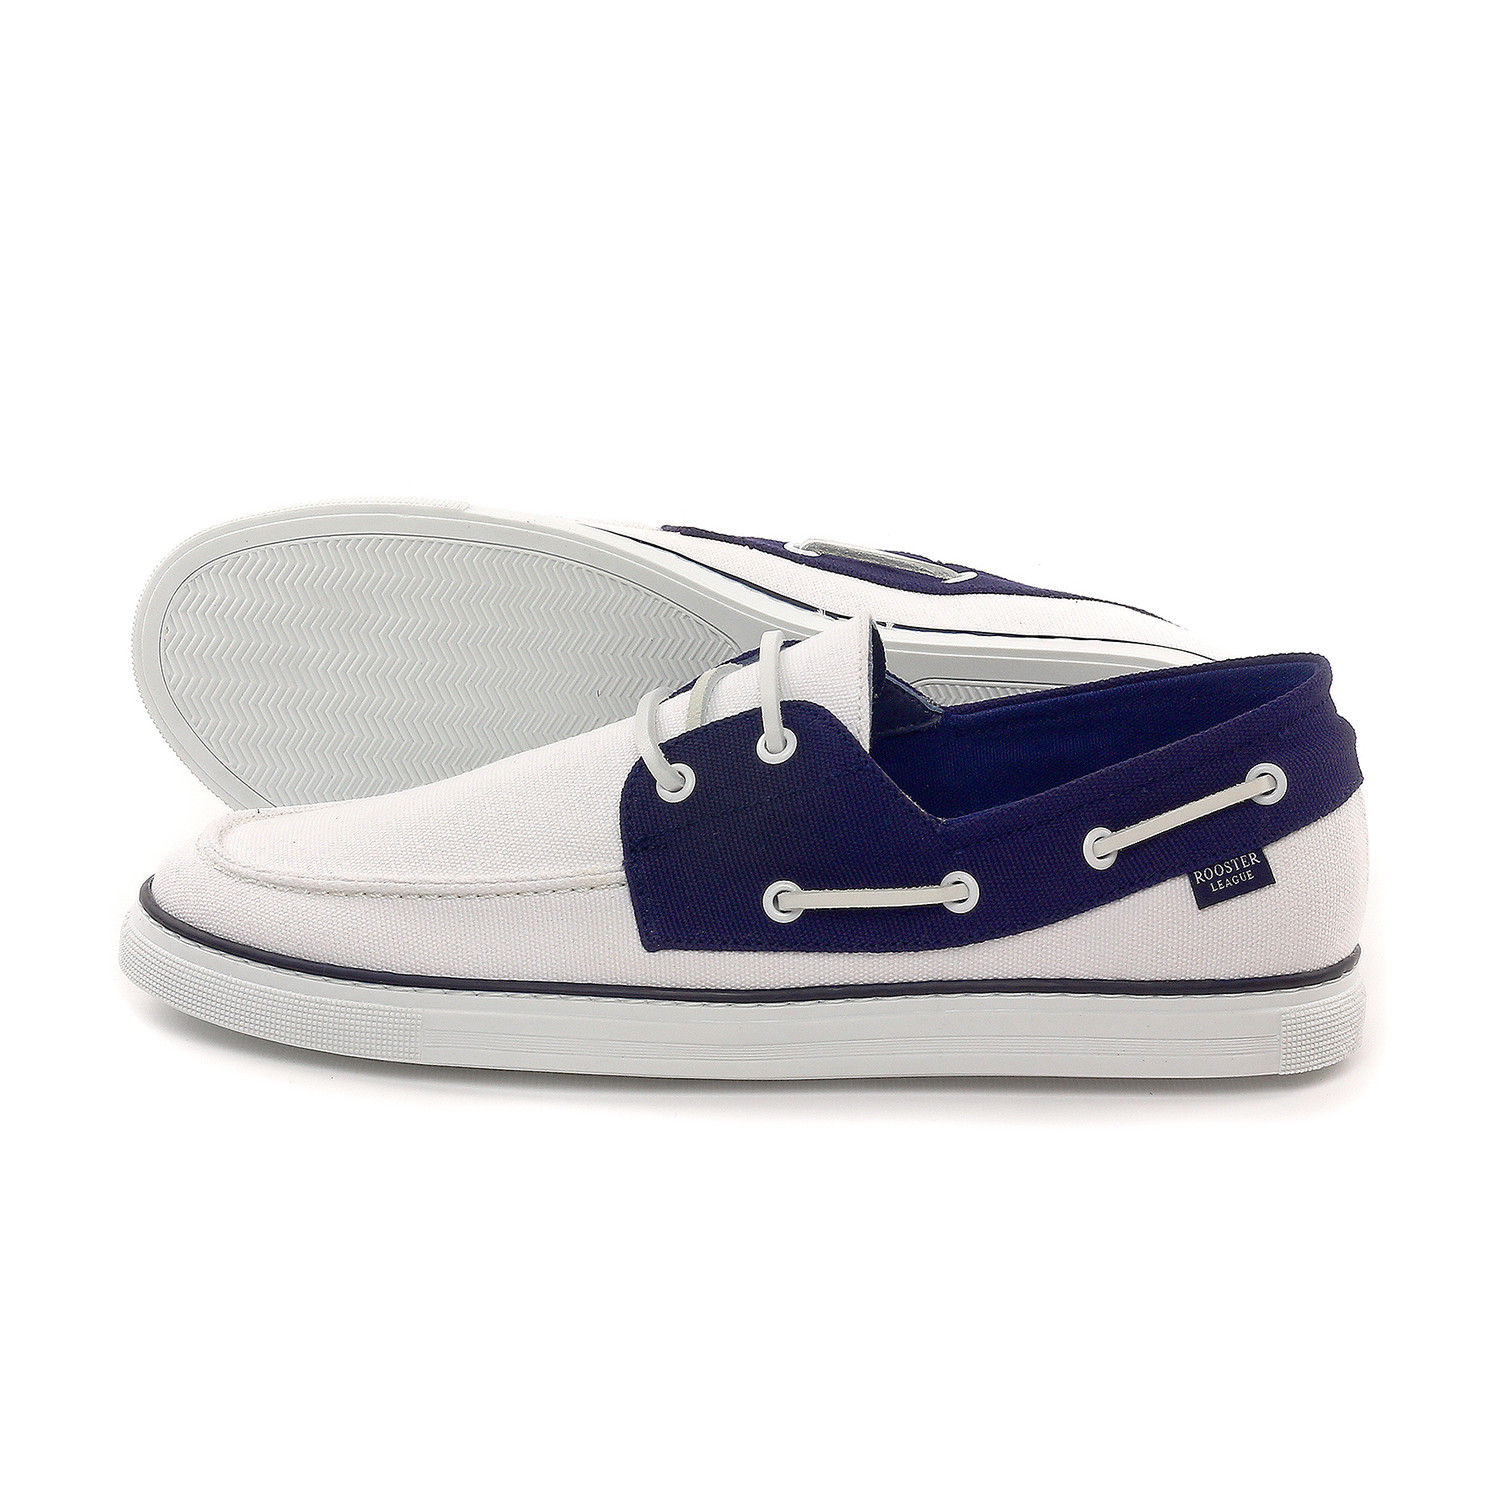 boat shoe white navy us 7 rooster league touch